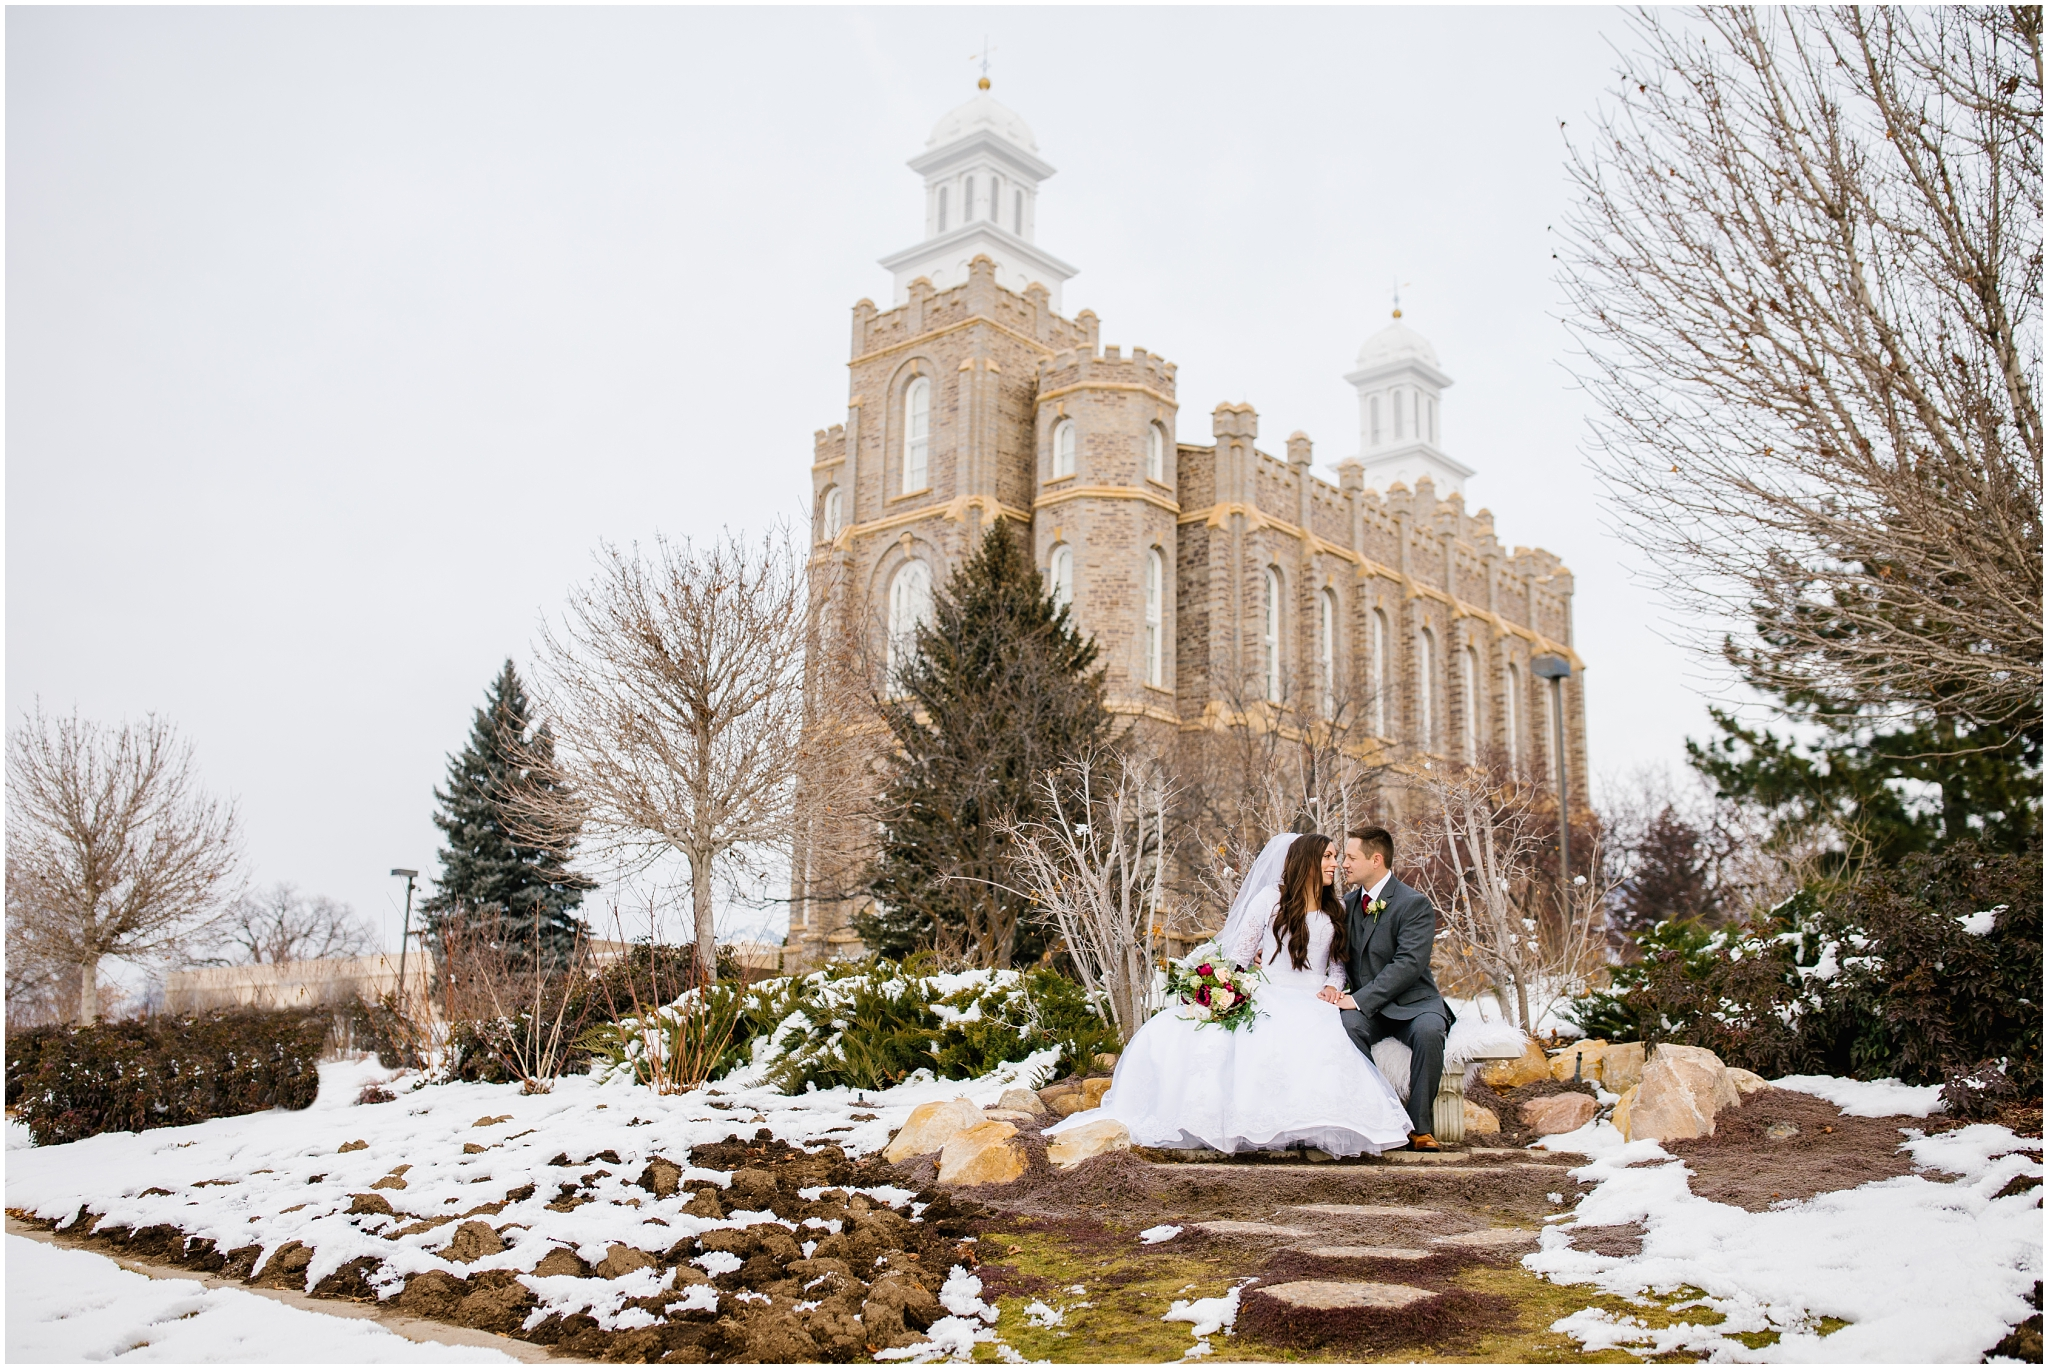 SSBridals-92_Lizzie-B-Imagery-Utah-Wedding-Photographer-Salt-Lake-City-Park-City-Logan-Utah-Temple.jpg